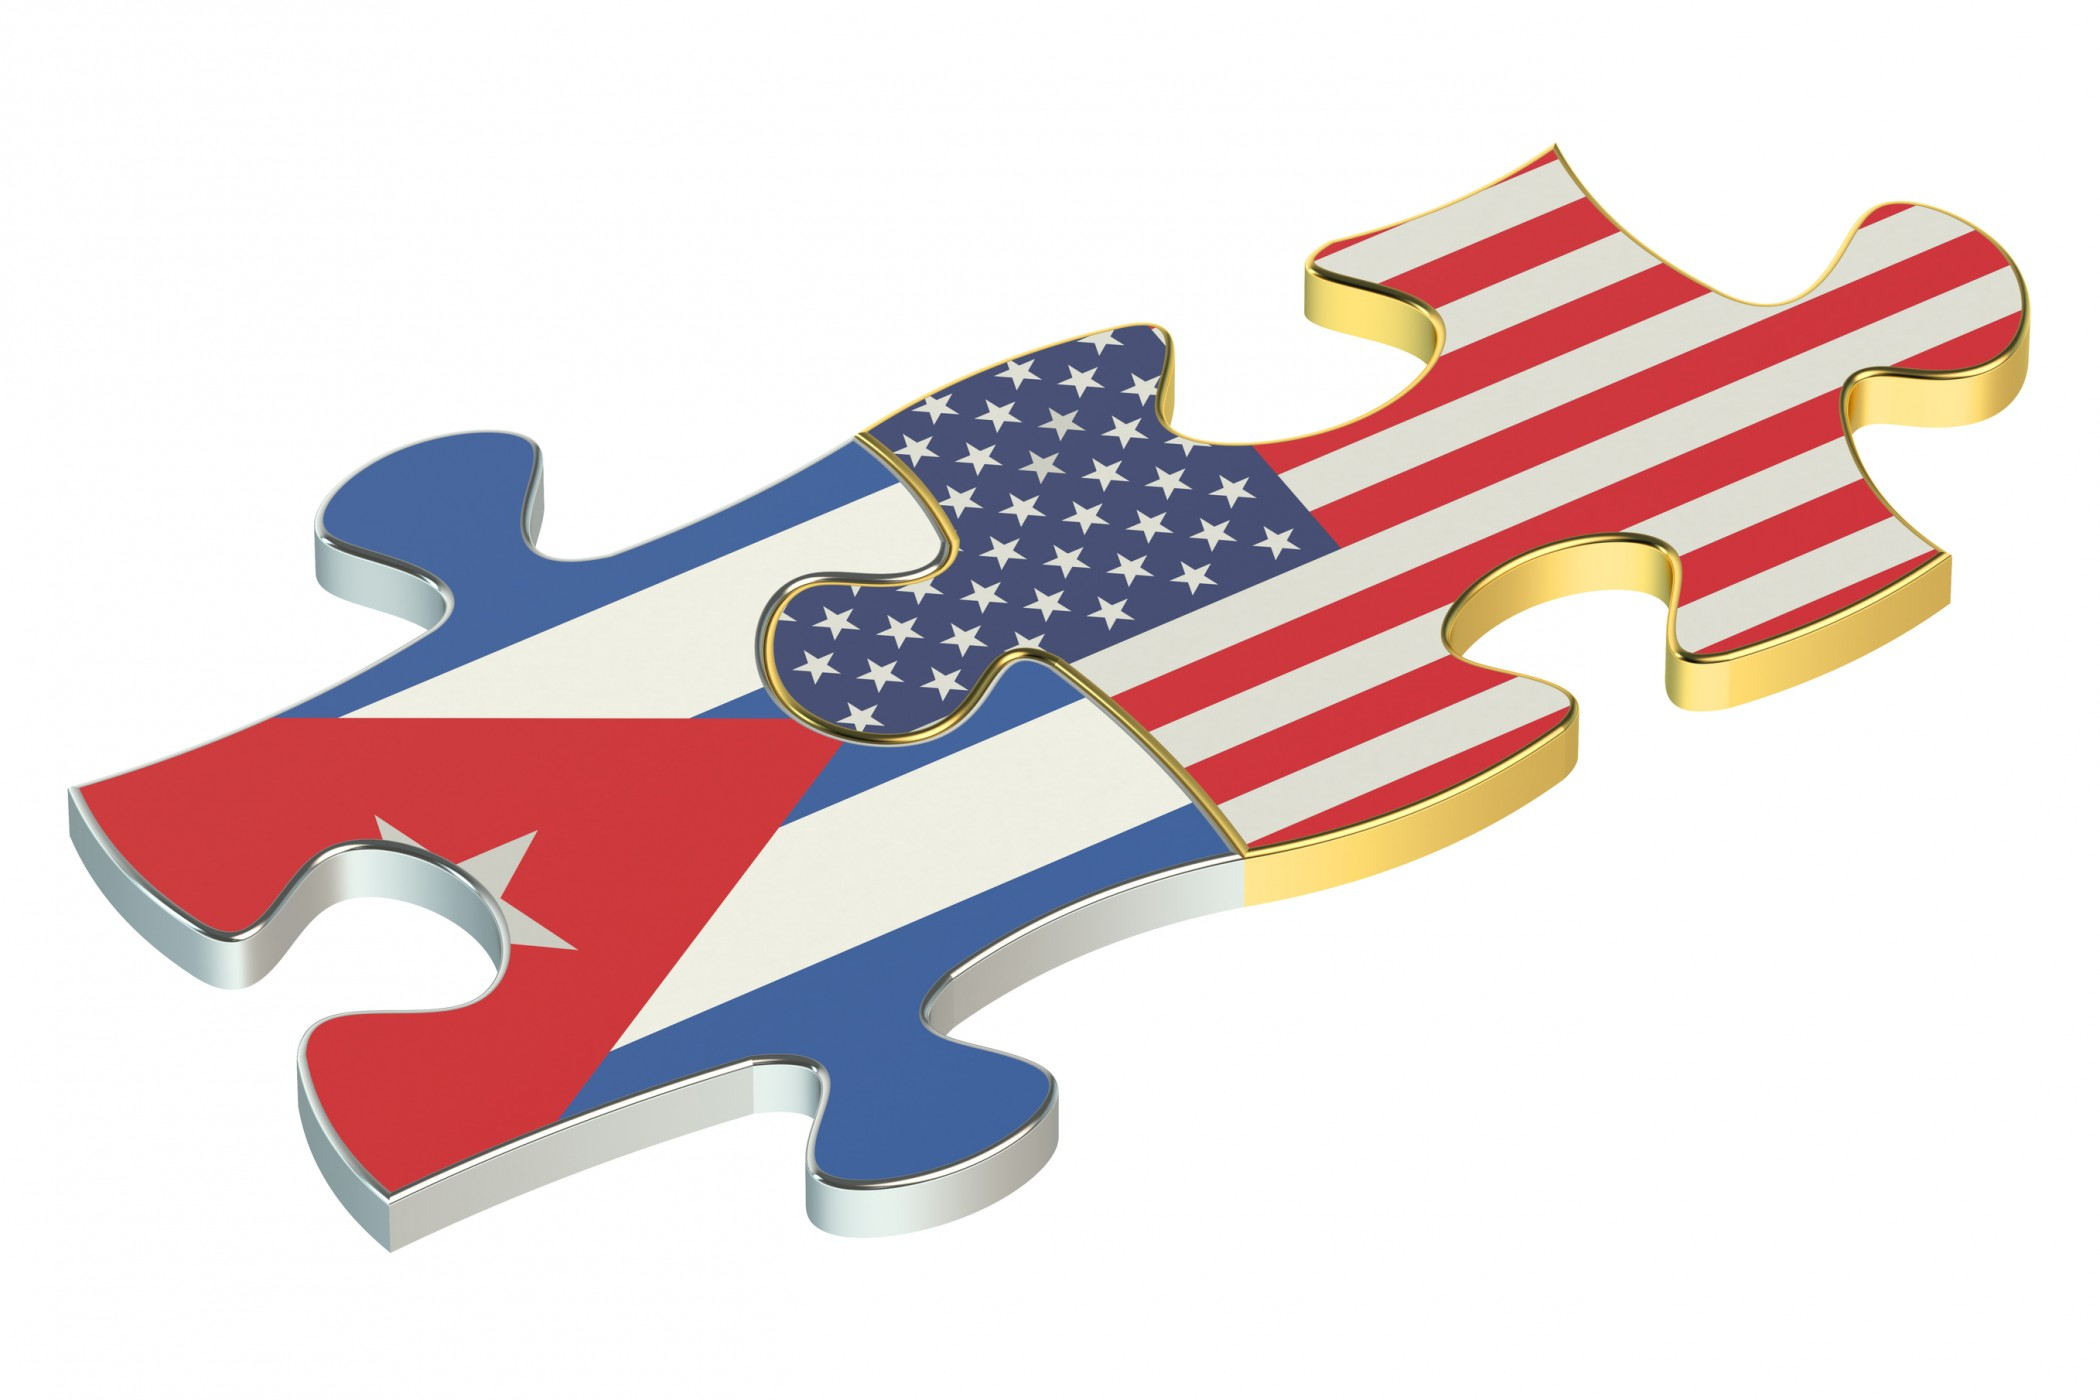 USA and Cuba puzzles from flags